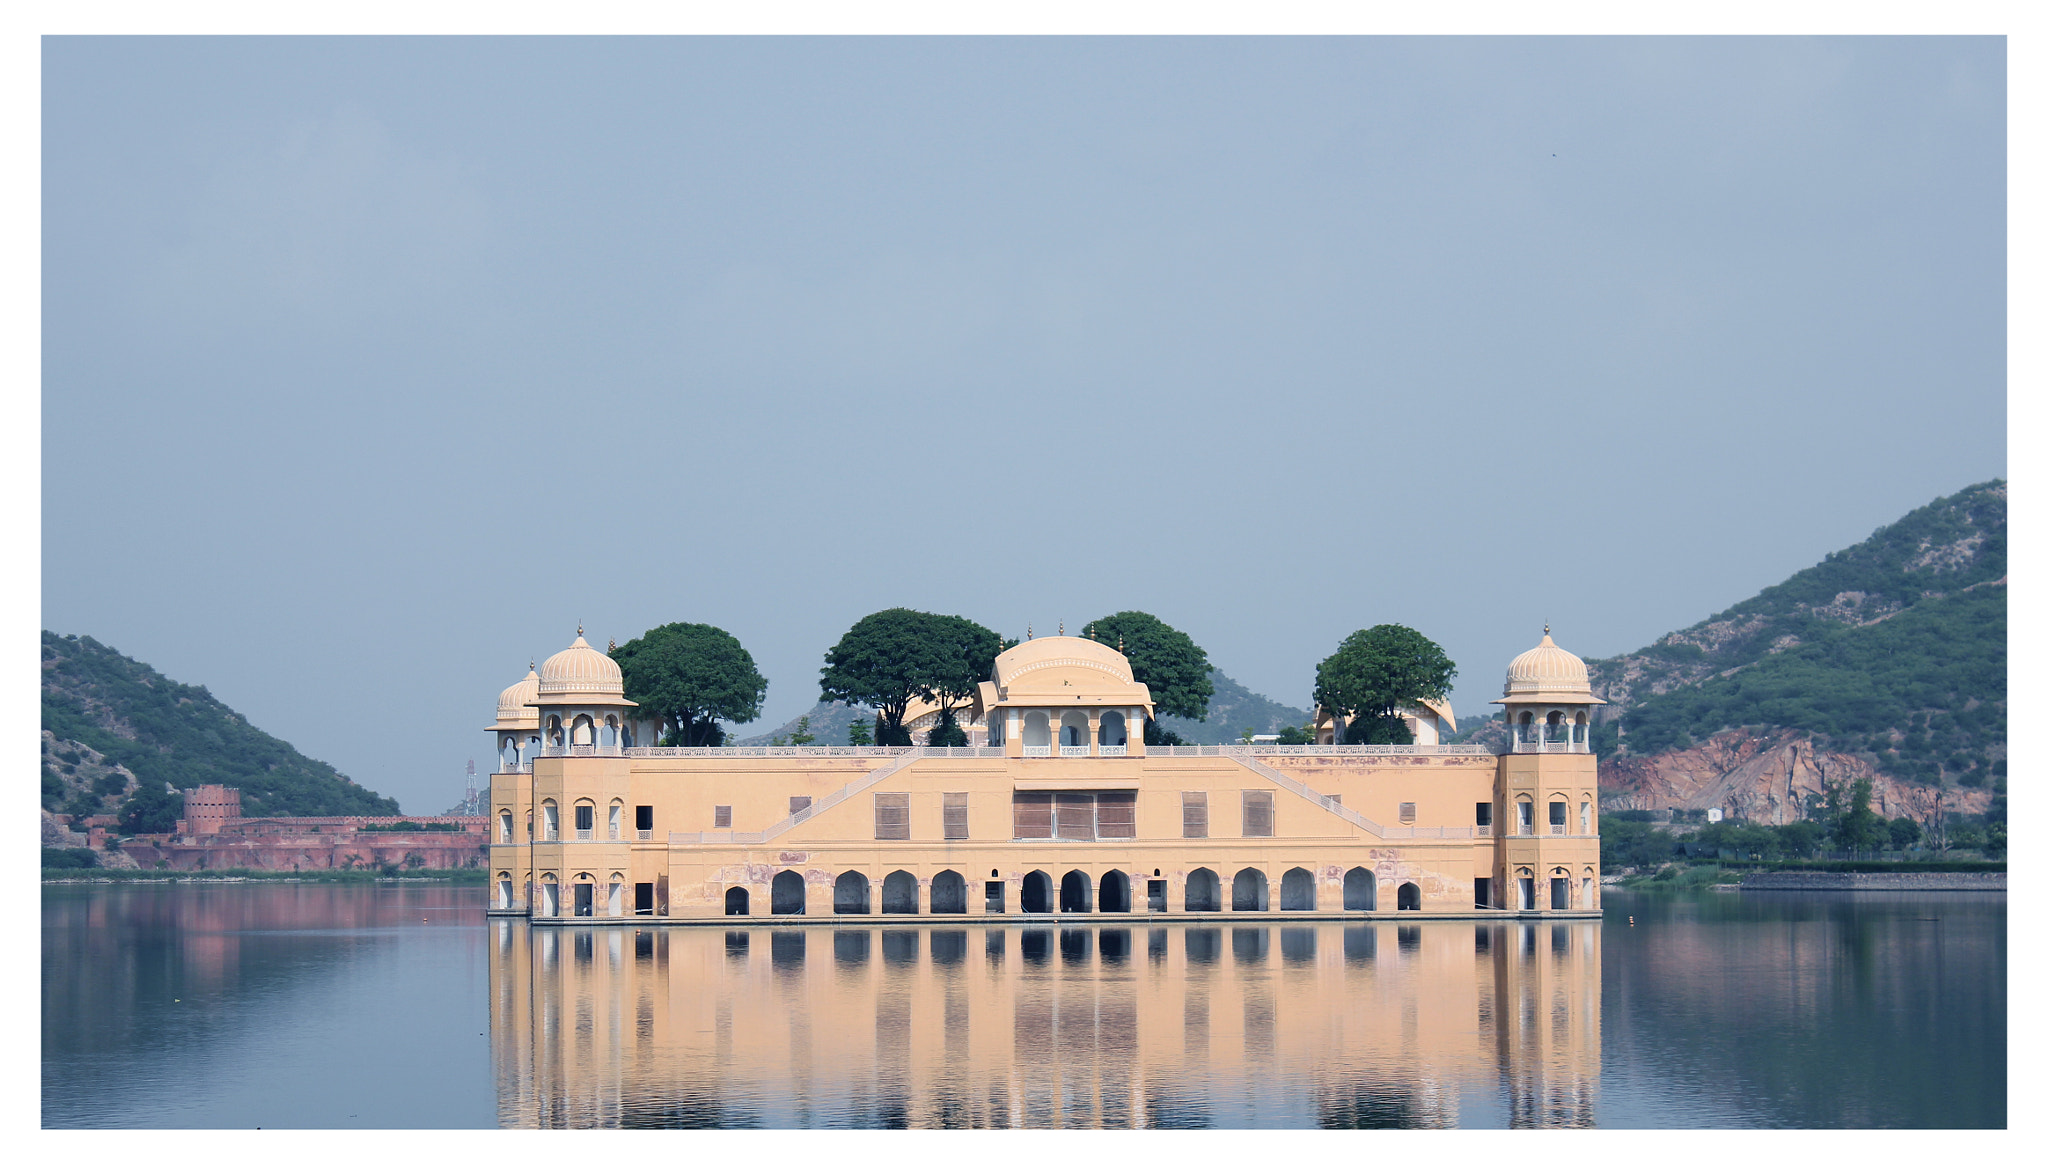 Photograph Jal Mahal 2nd Perspective by Yashovardhan Sodhani on 500px